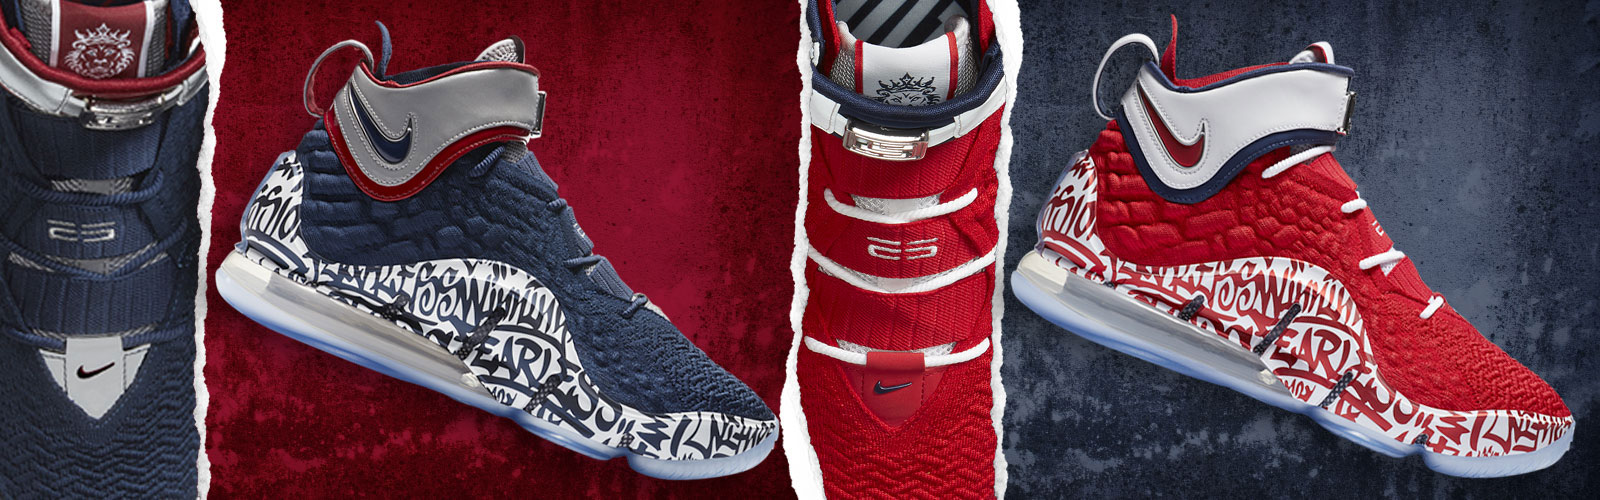 nike-lebron-17-graffiti-cold-blue-fire-red-where-to-buy